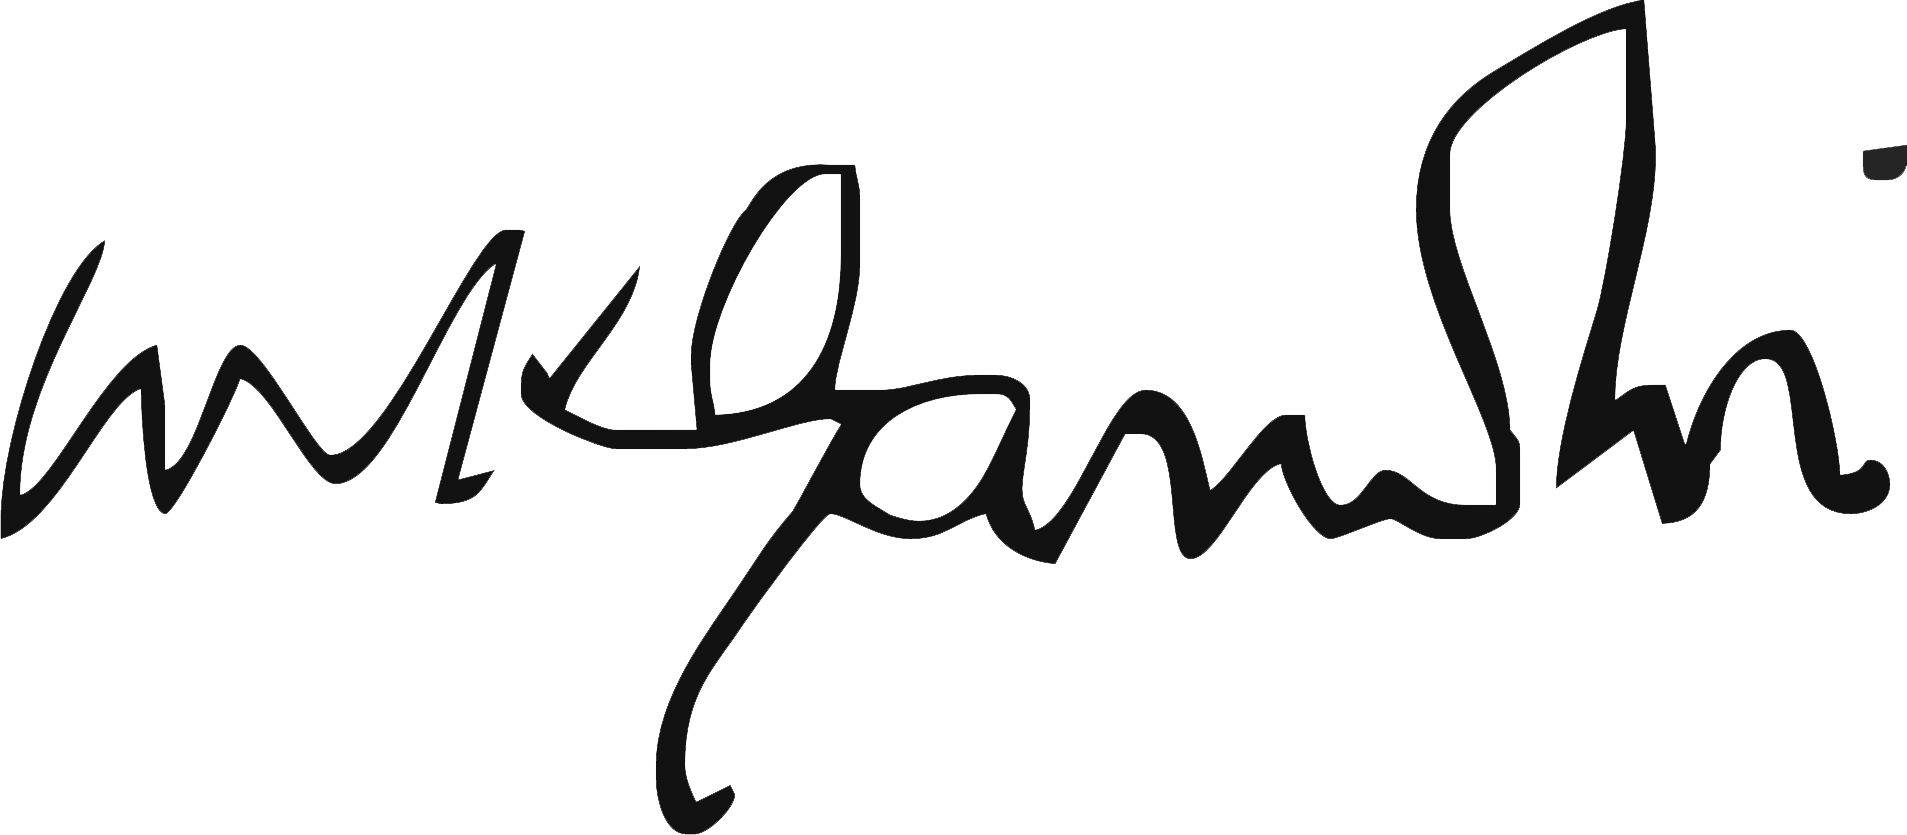 Gandi Picture English file:gandi signature - wikipedia